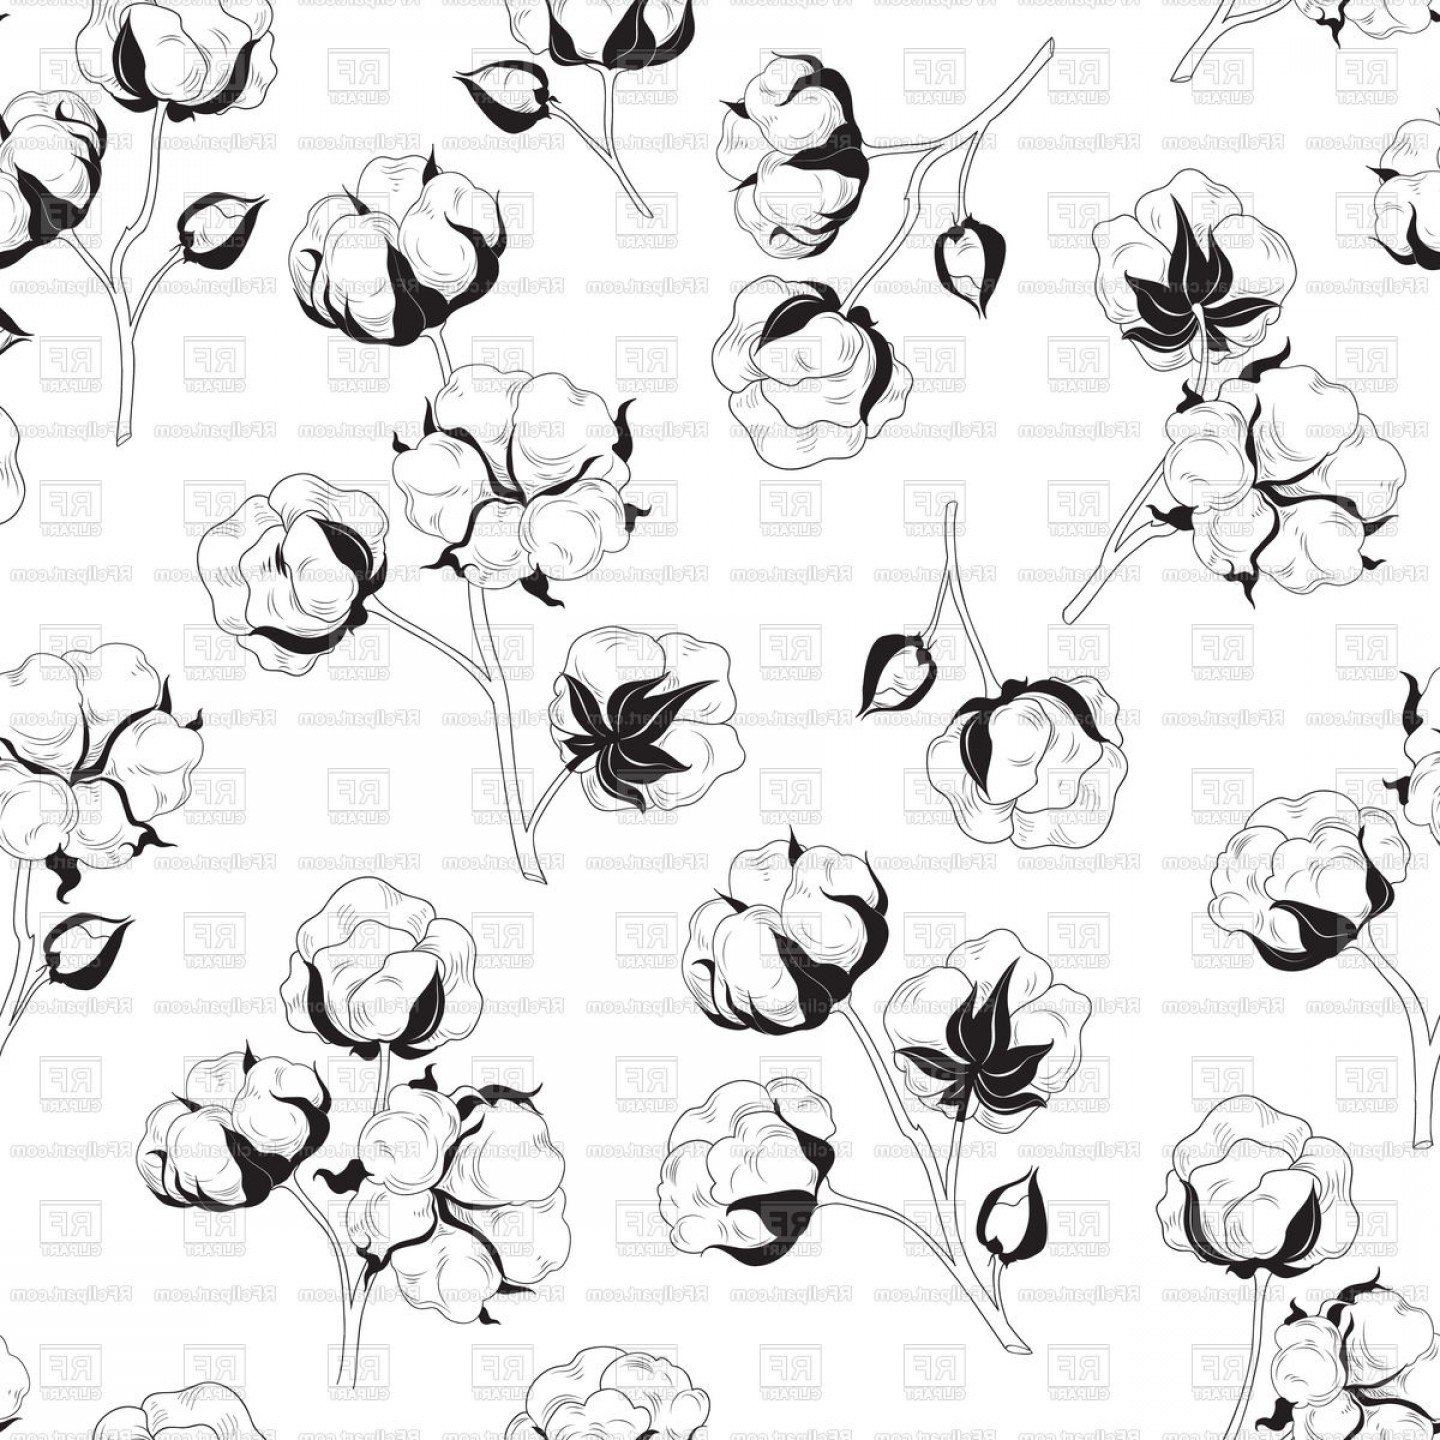 Cotton Vector Graphic: Floral Seamless Pattern With Flower Cotton Vector Clipart